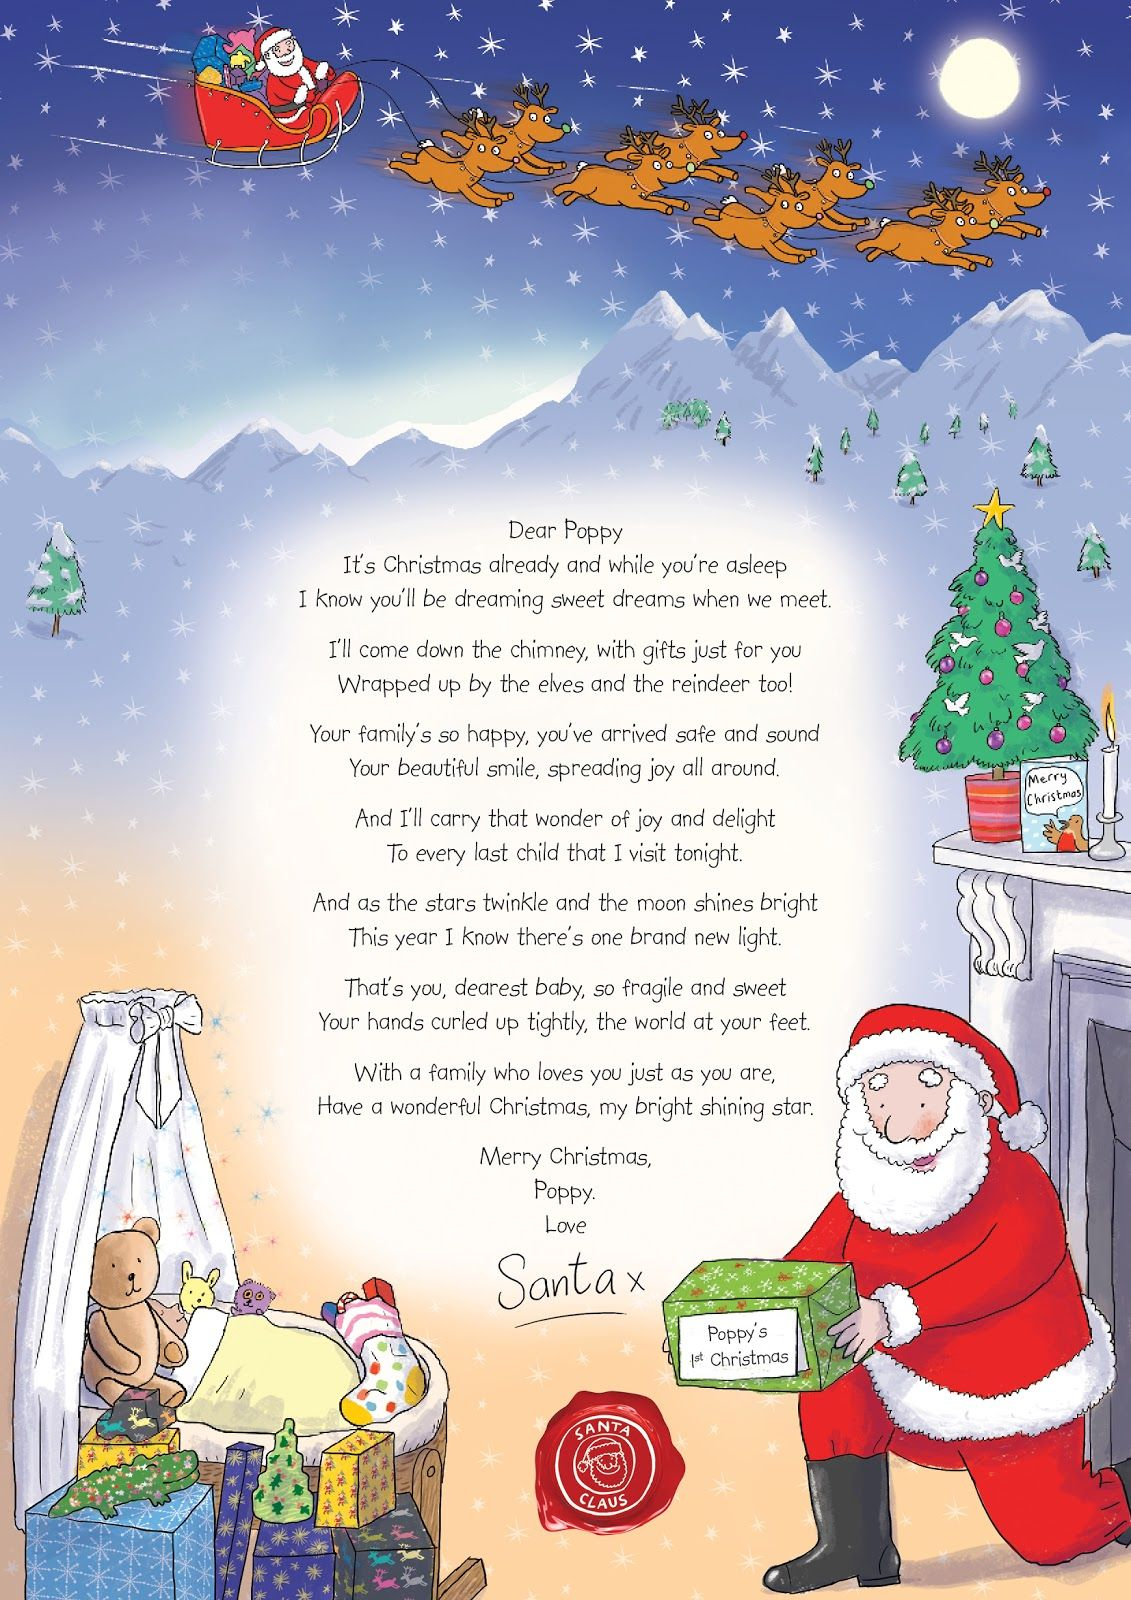 Letter from Santa make a child's Christmas and help the